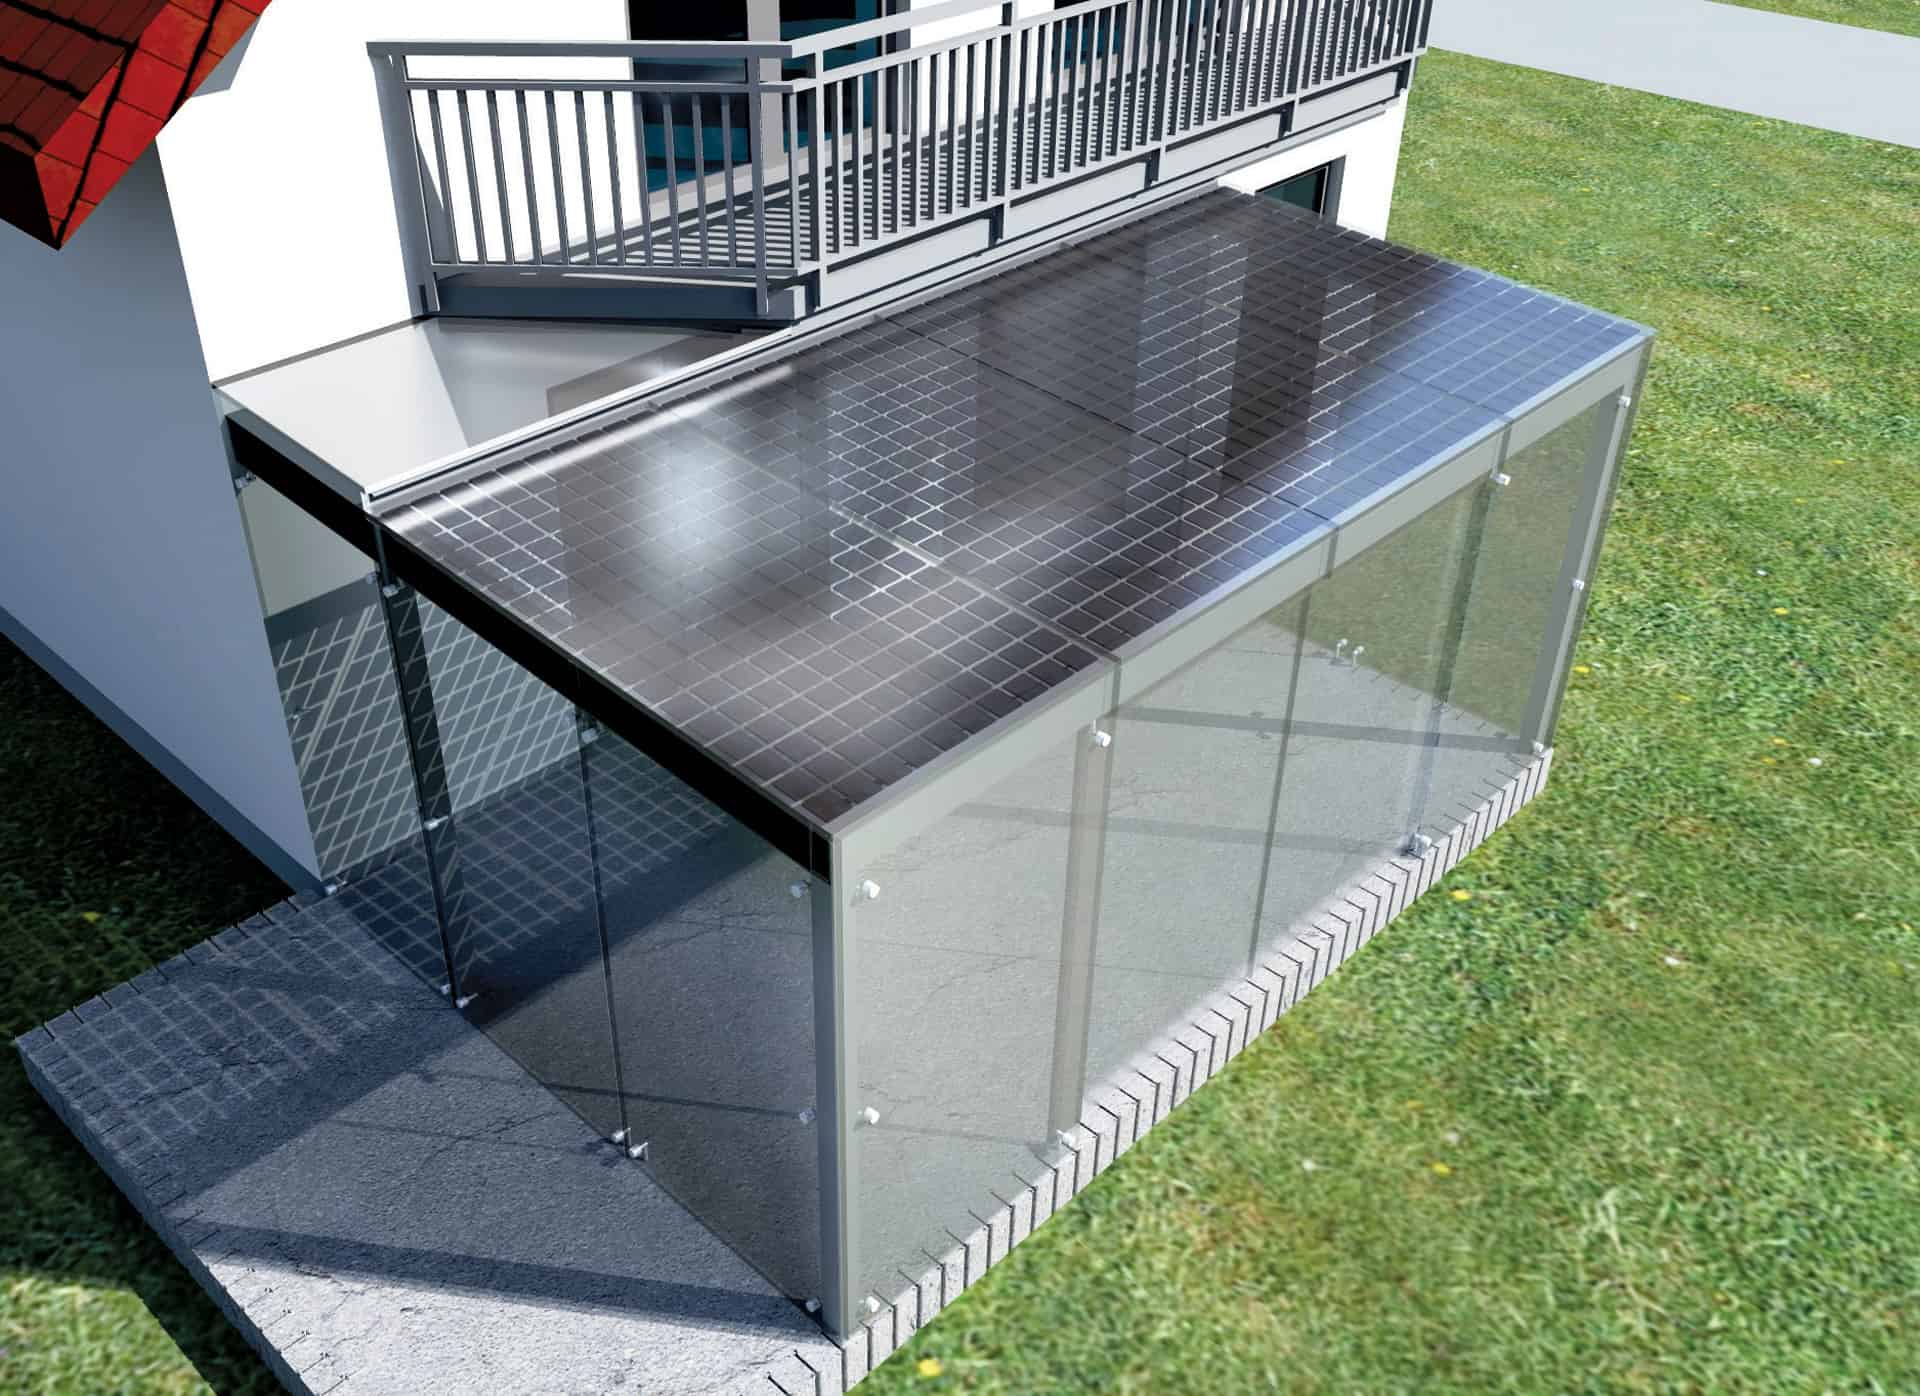 Concept / PV patio shelter